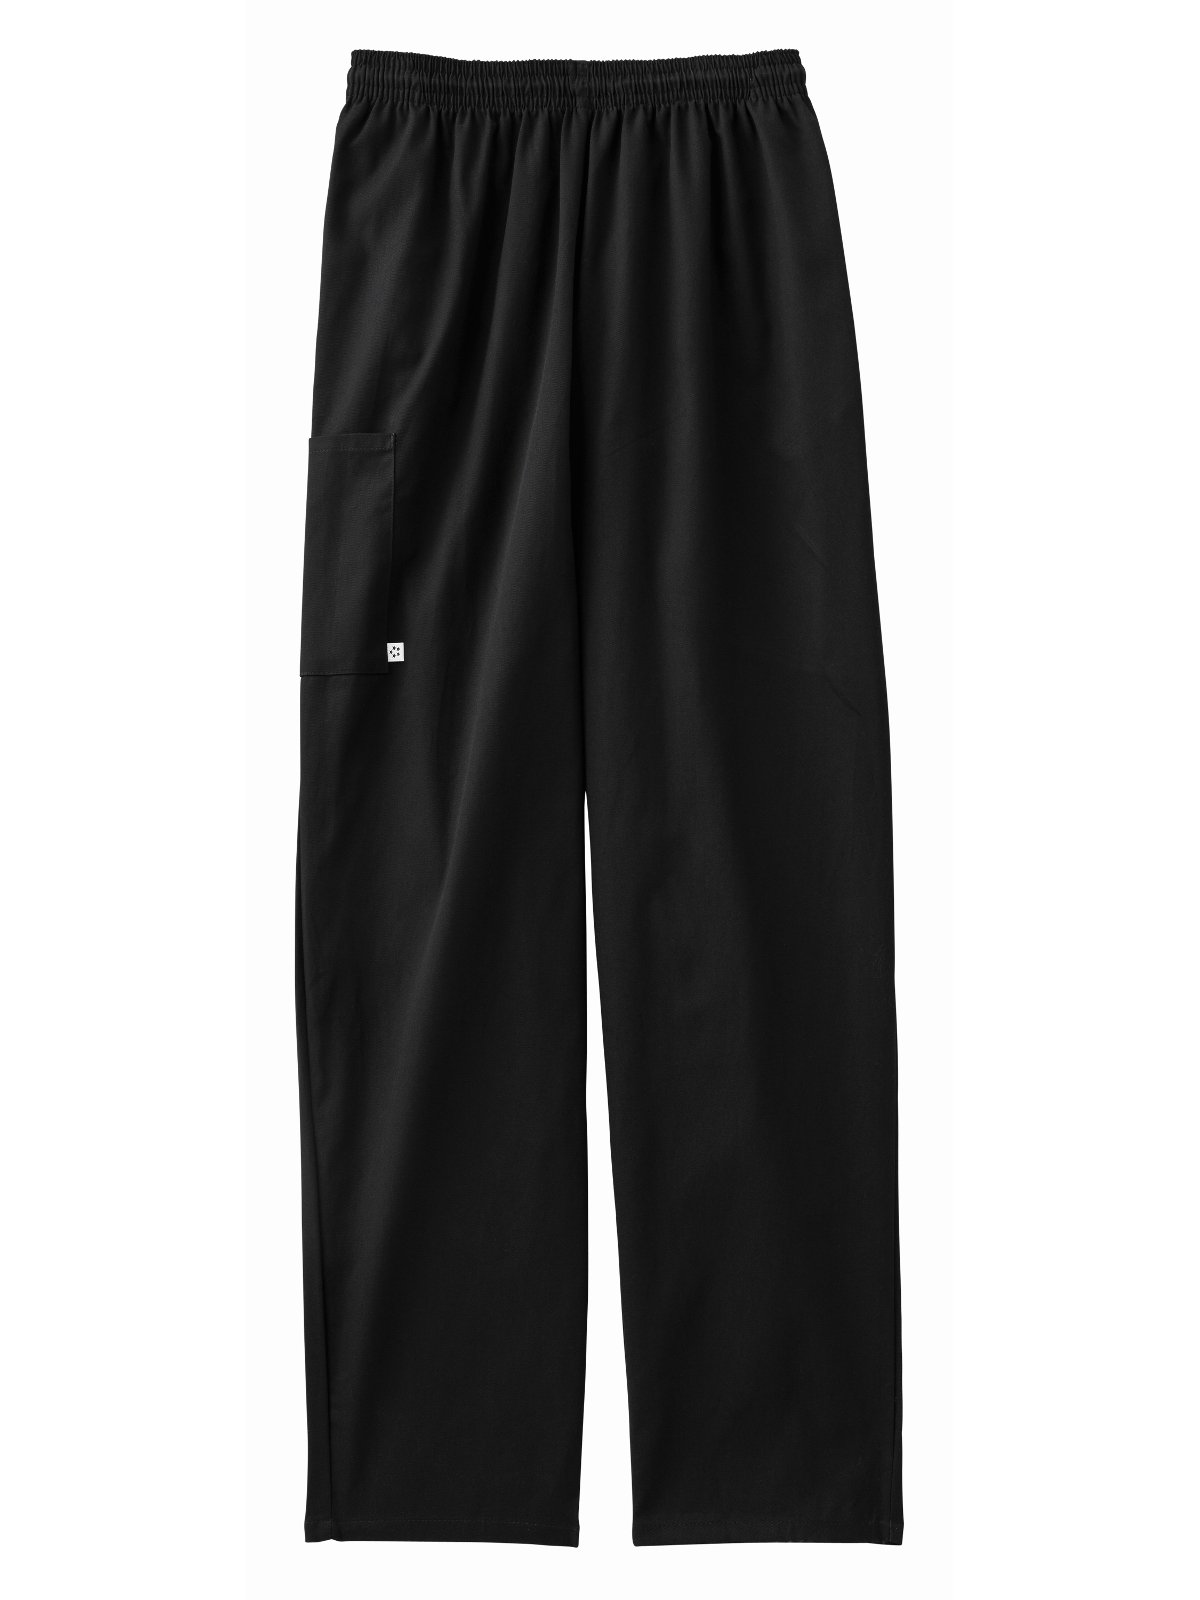 Five Star 18100 Adult's Pull-On Baggy Pant Black Small